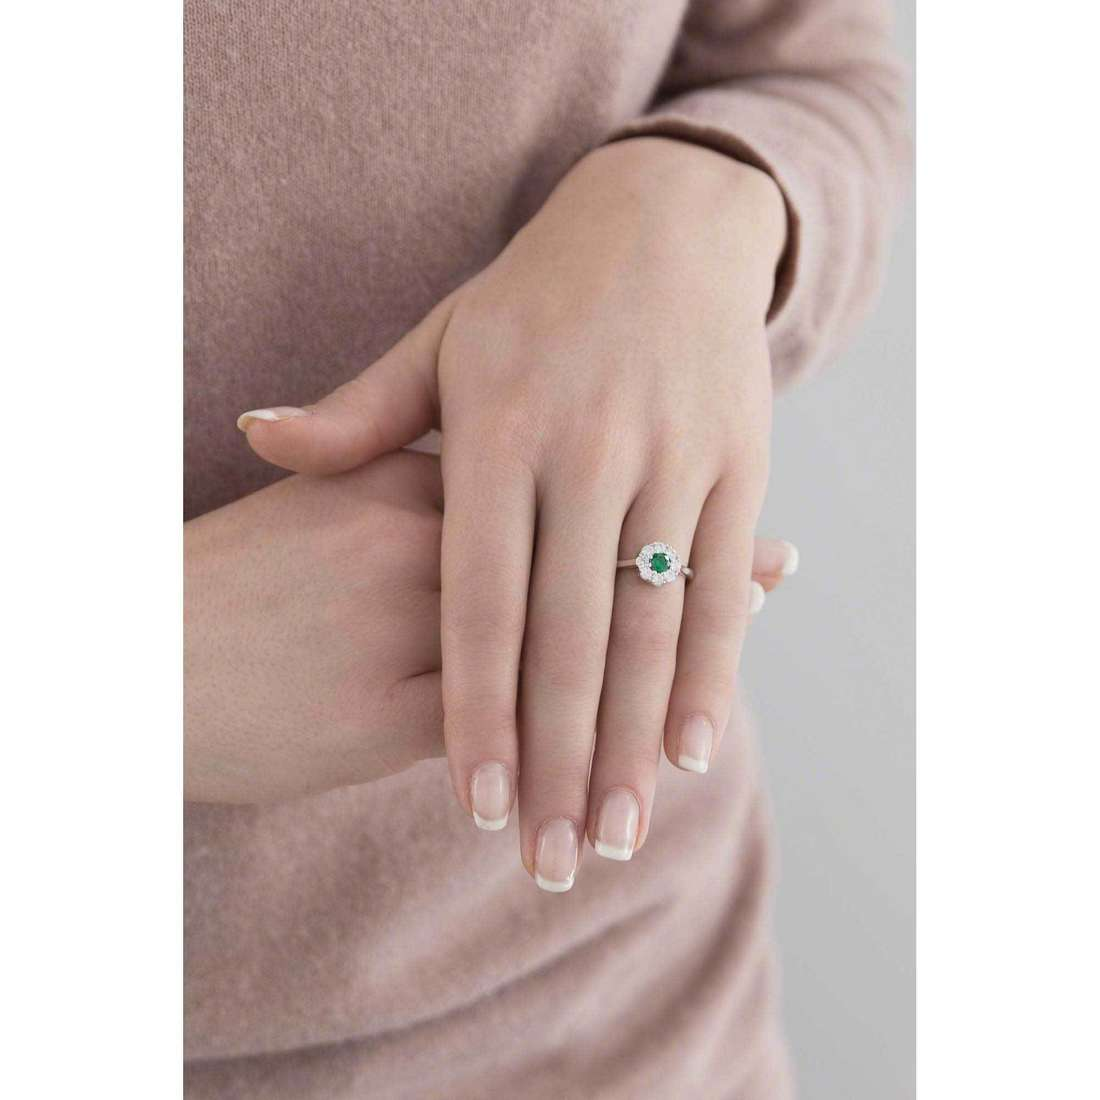 Bliss rings Florian woman 20061025 indosso